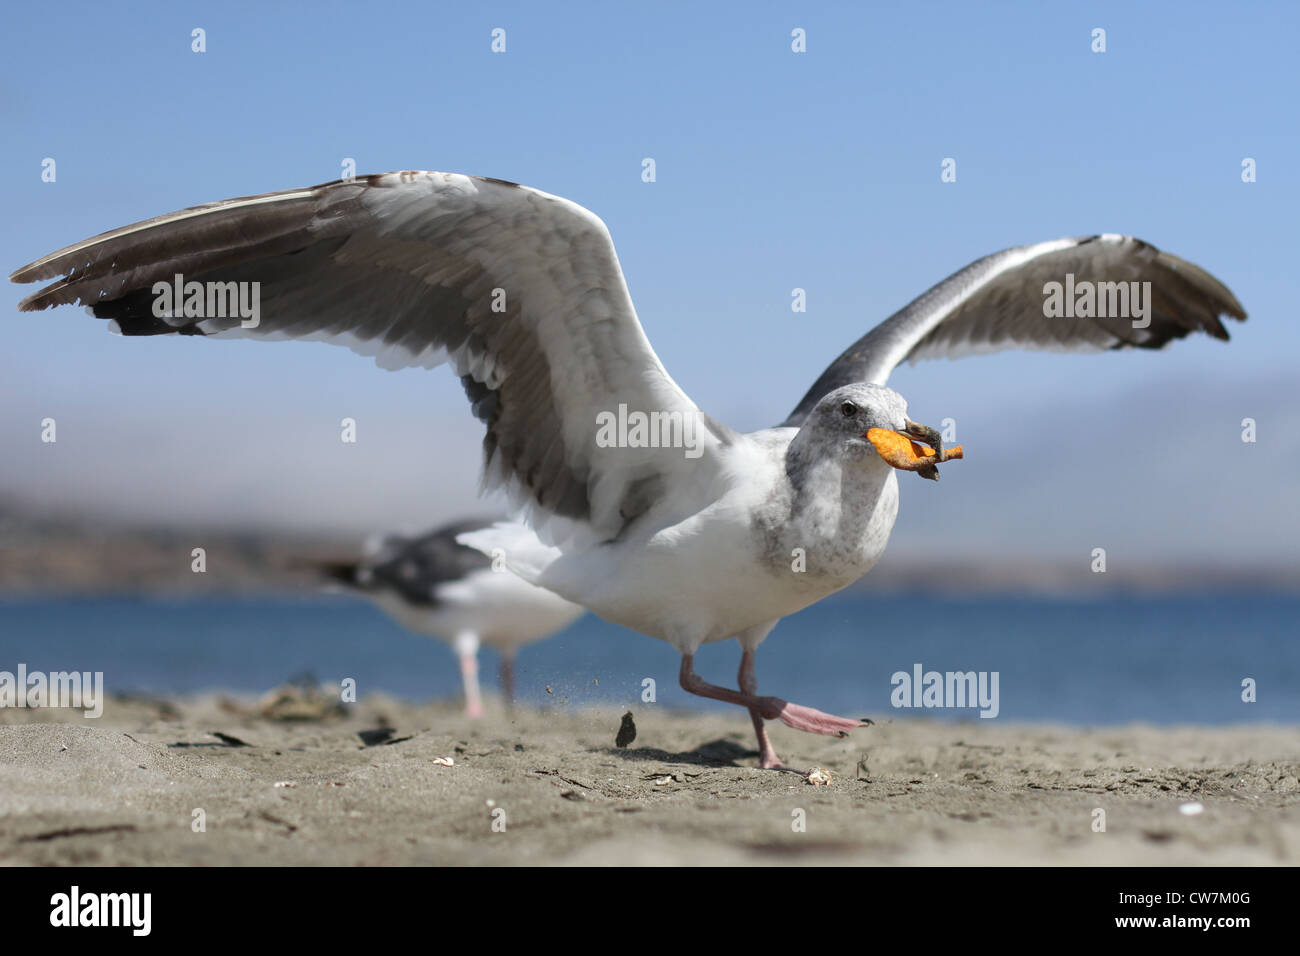 A seagull eating a Dorito on the beach at Bodega Bay. Stock Photo